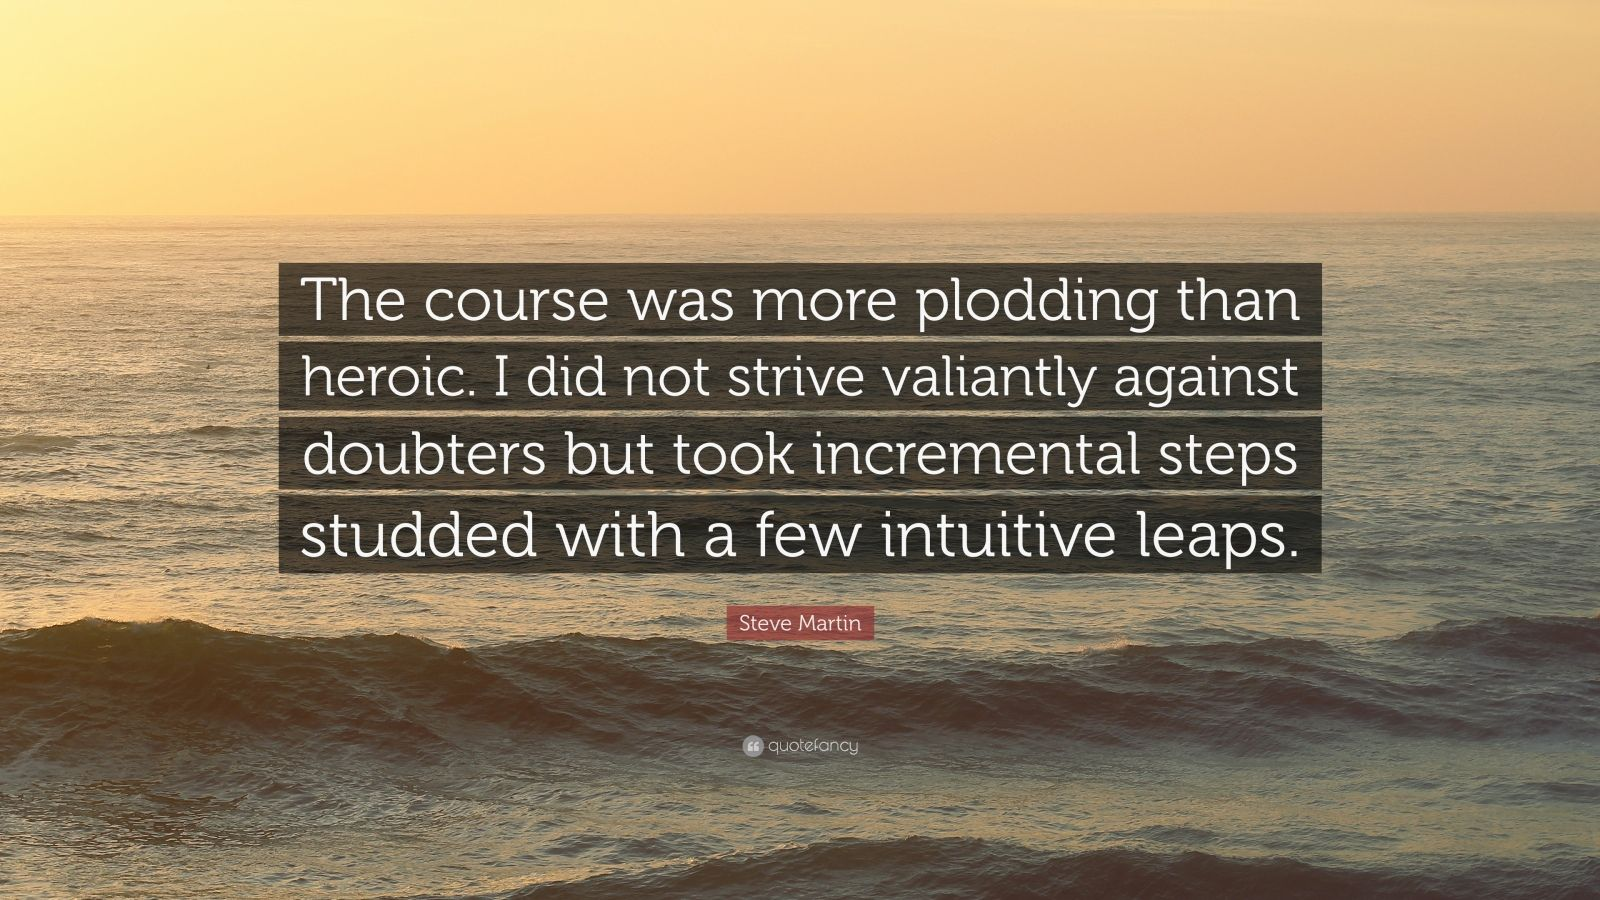 """Steve Martin Quote: """"The course was more plodding than heroic. I did not strive valiantly against doubters but took incremental steps studded with a few intuitive leaps."""""""